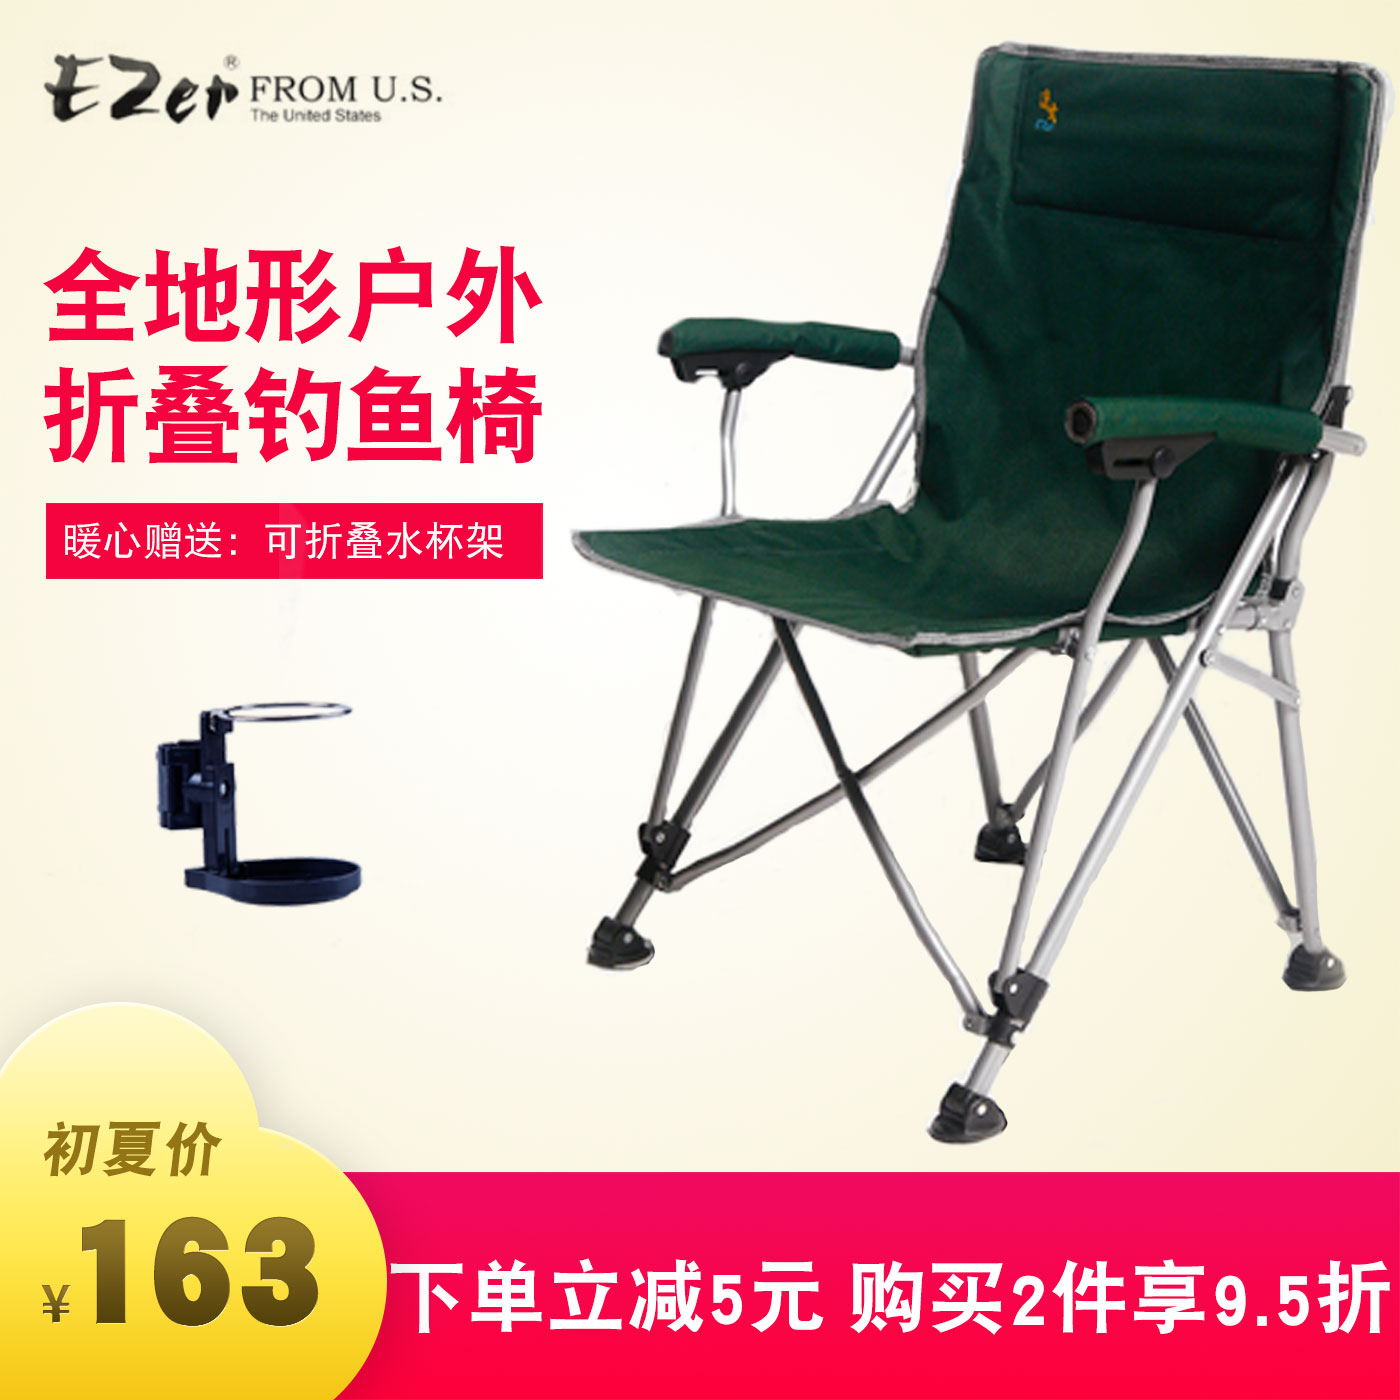 fishing chair best price high quality camping chairs category outdoor furniture productname ezer folding simple portable director recliner ultra light sketch